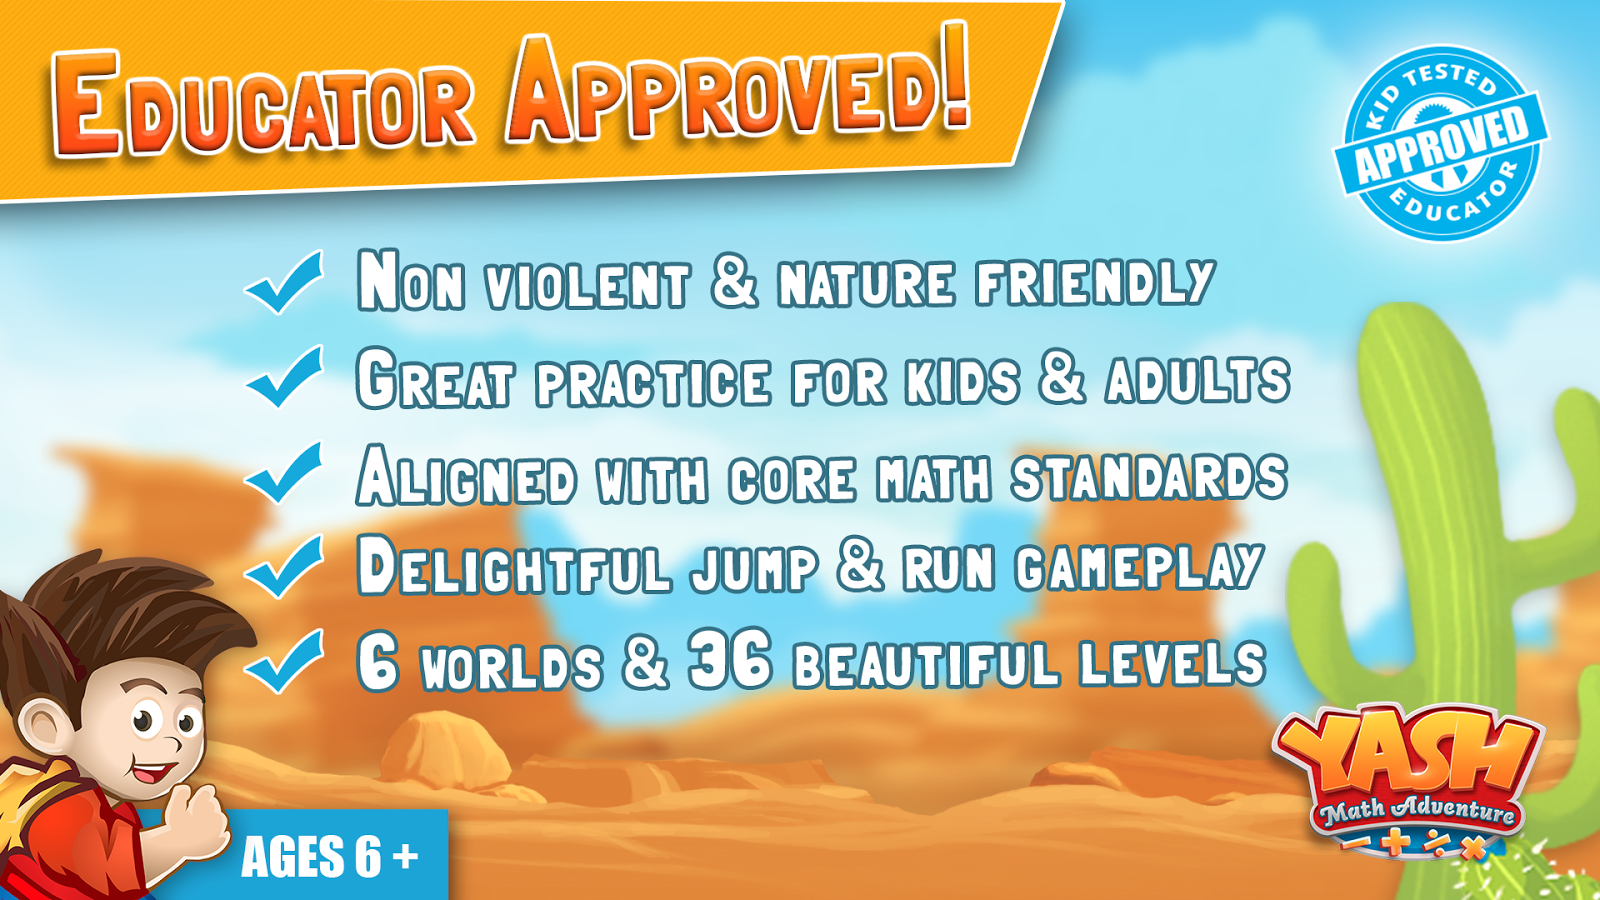 Yash Math Adventure Elementary 1.0.5 APK Download - Android ...